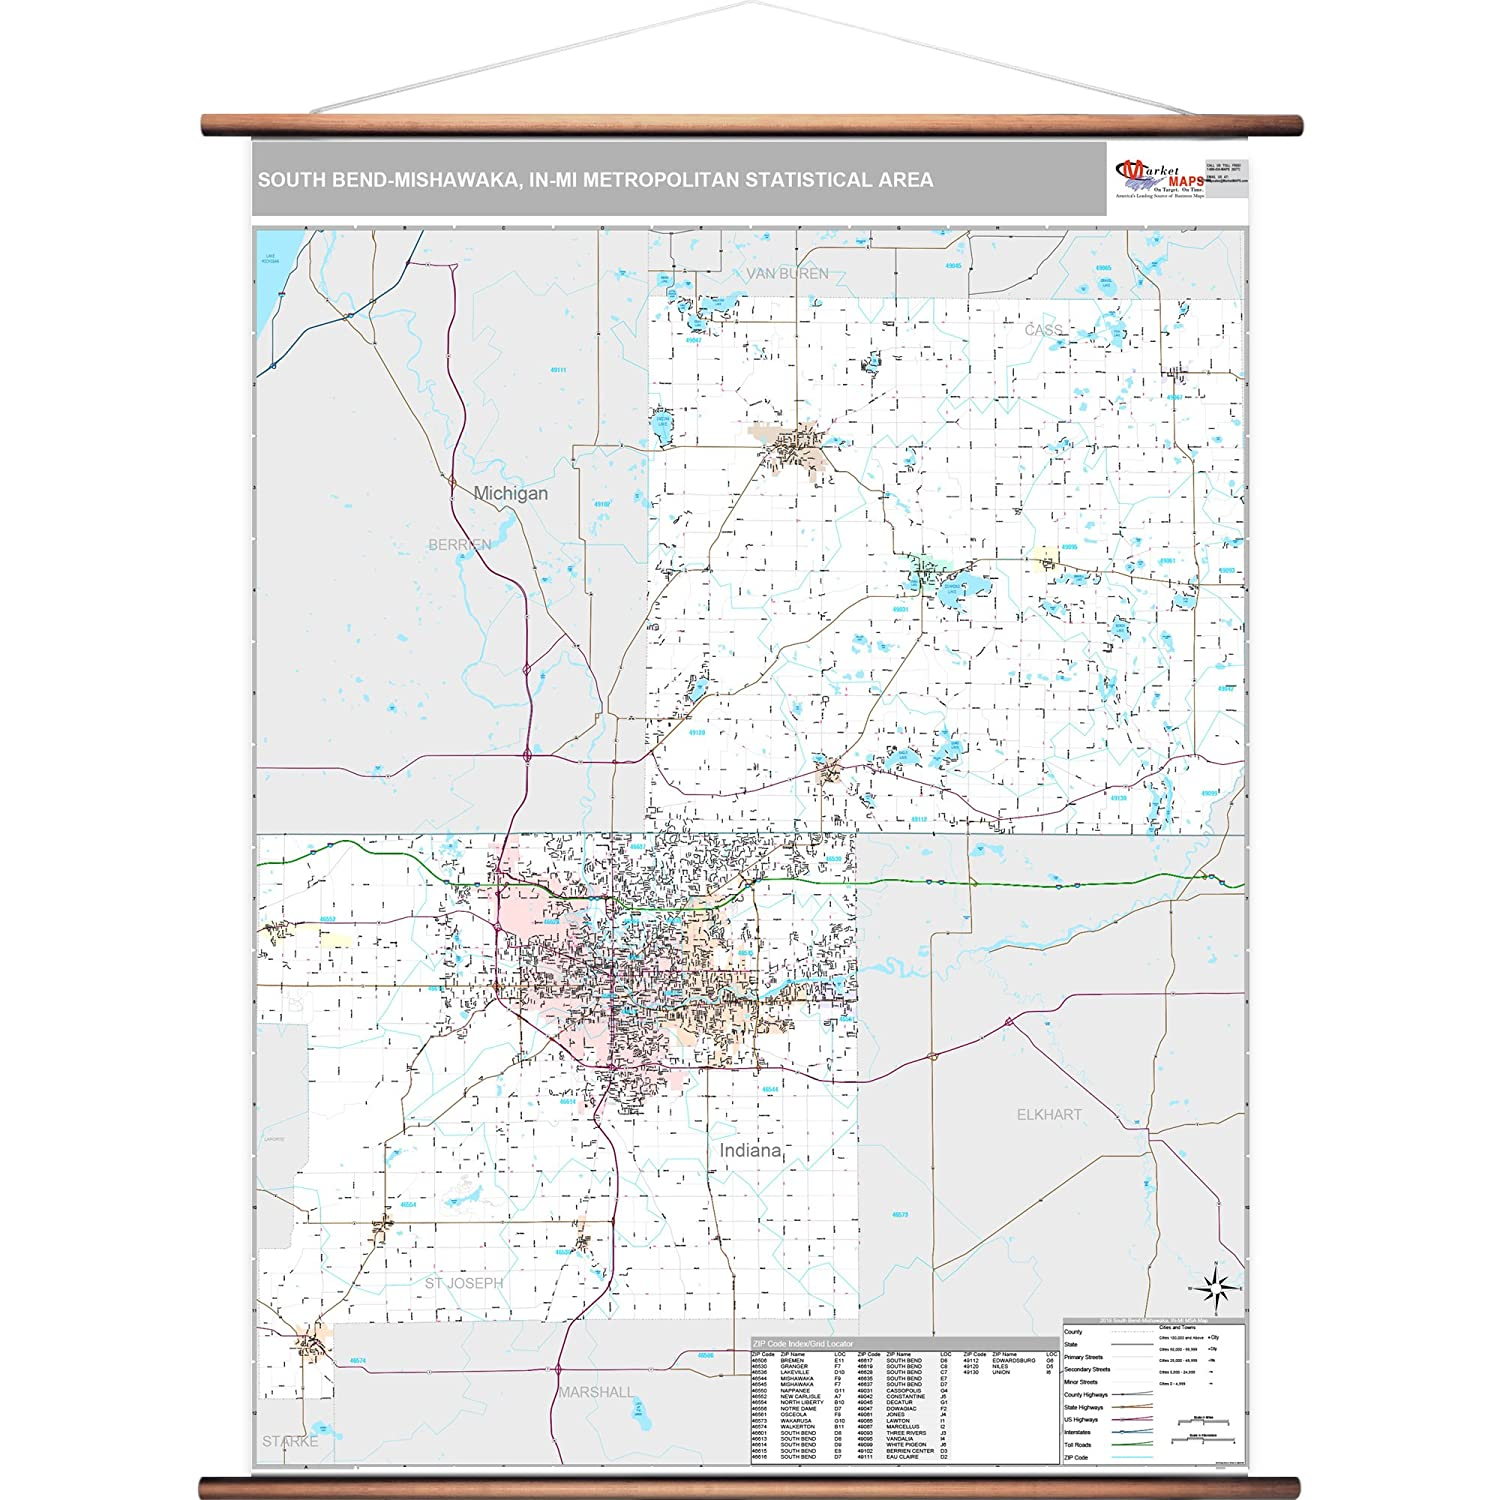 South Bend Indiana Zip Code Map.Amazon Com Marketmaps South Bend Mishawaka In Metro Area Wall Map